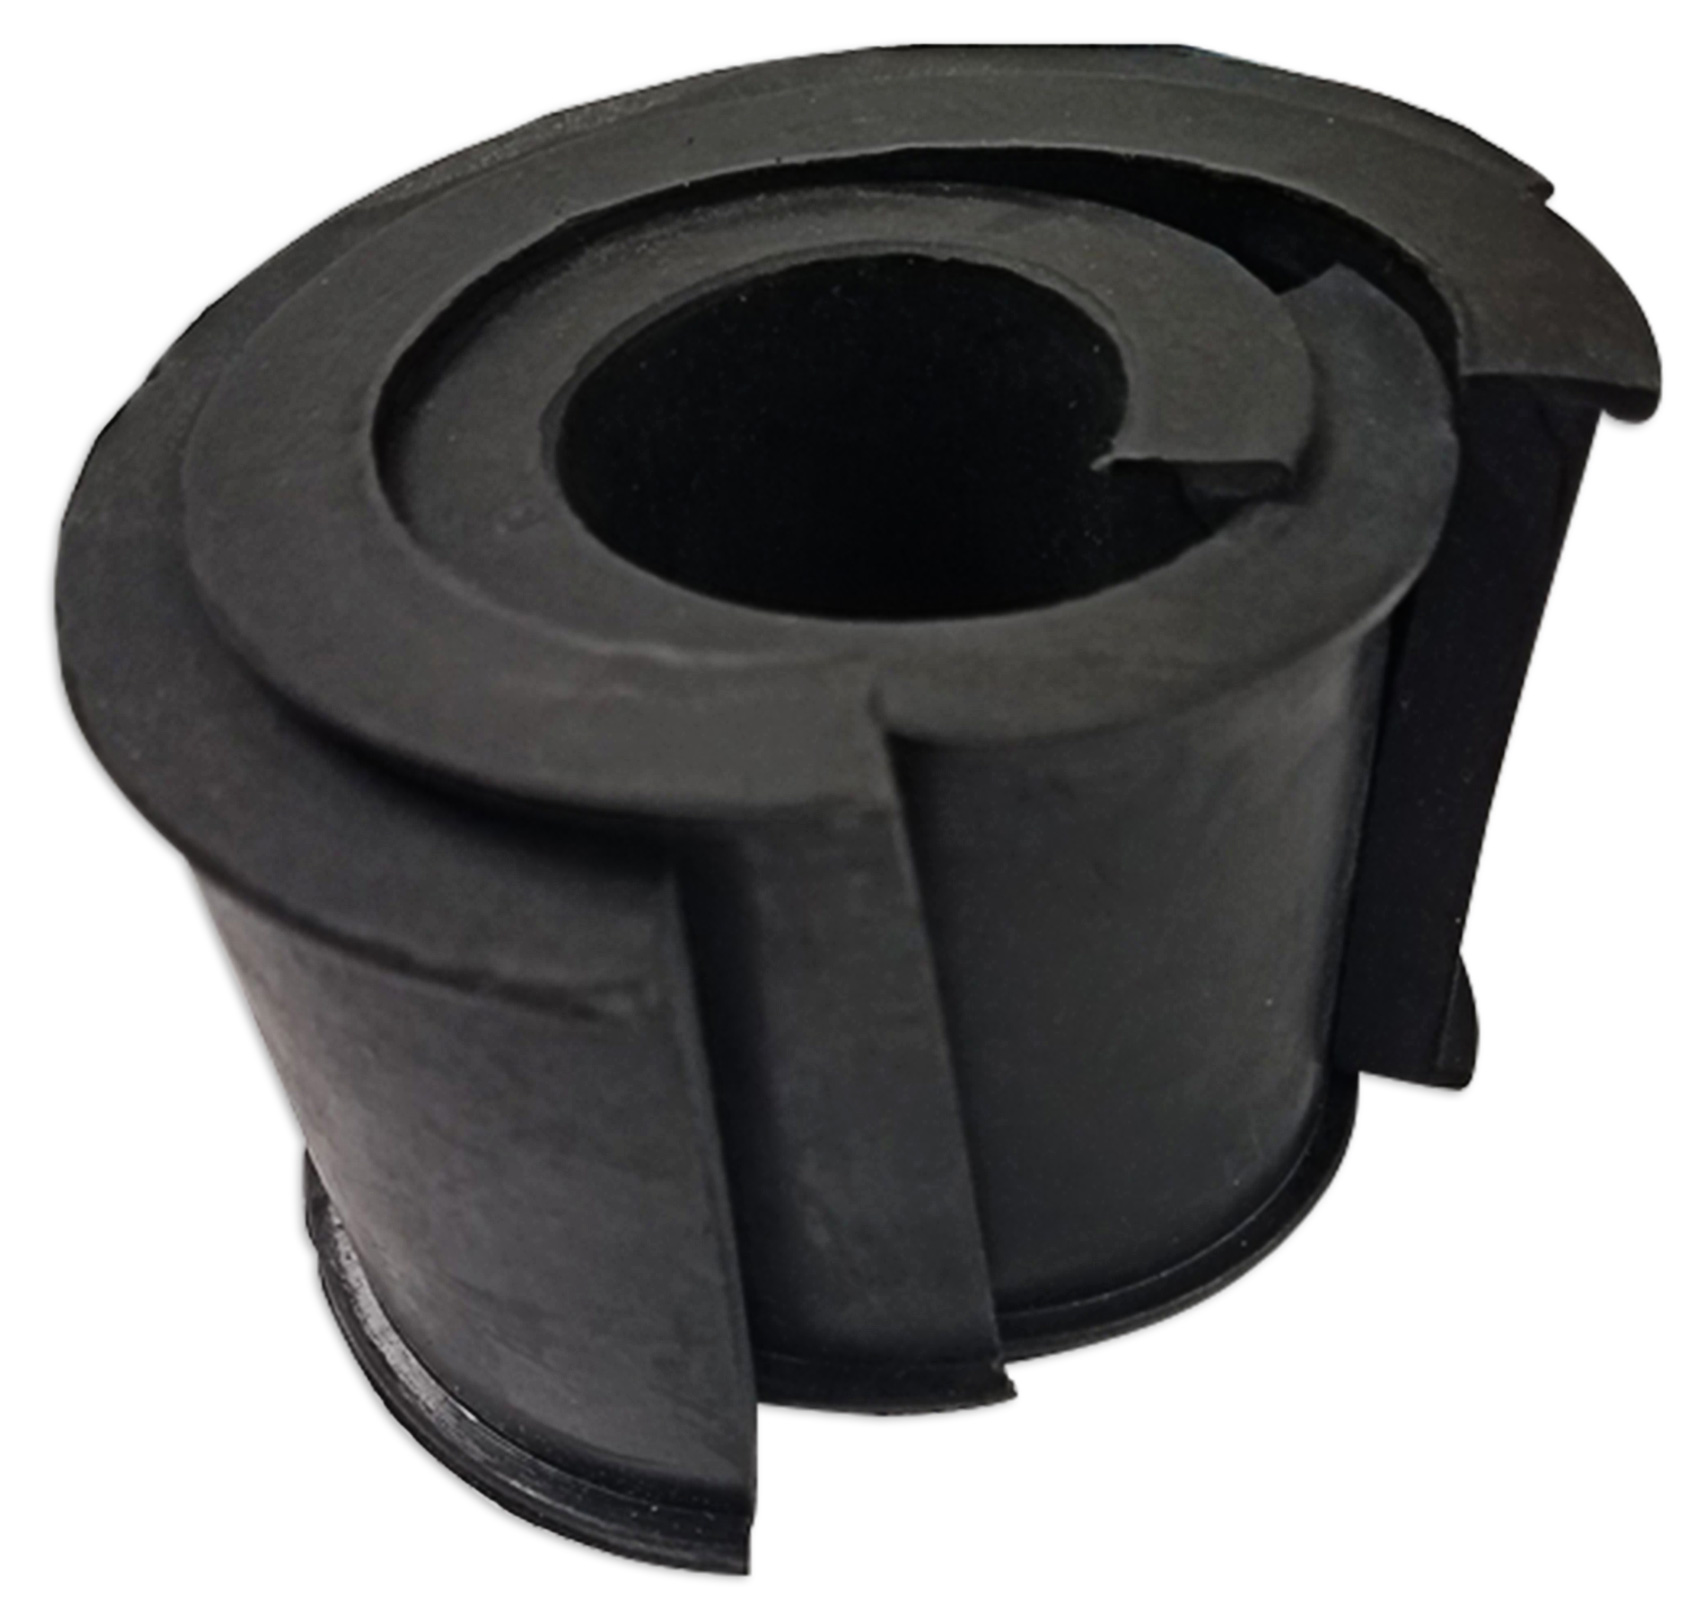 "Rockville 1.75"" Rubber Adapter Inserts For Polaris RZR Tower Speakers"